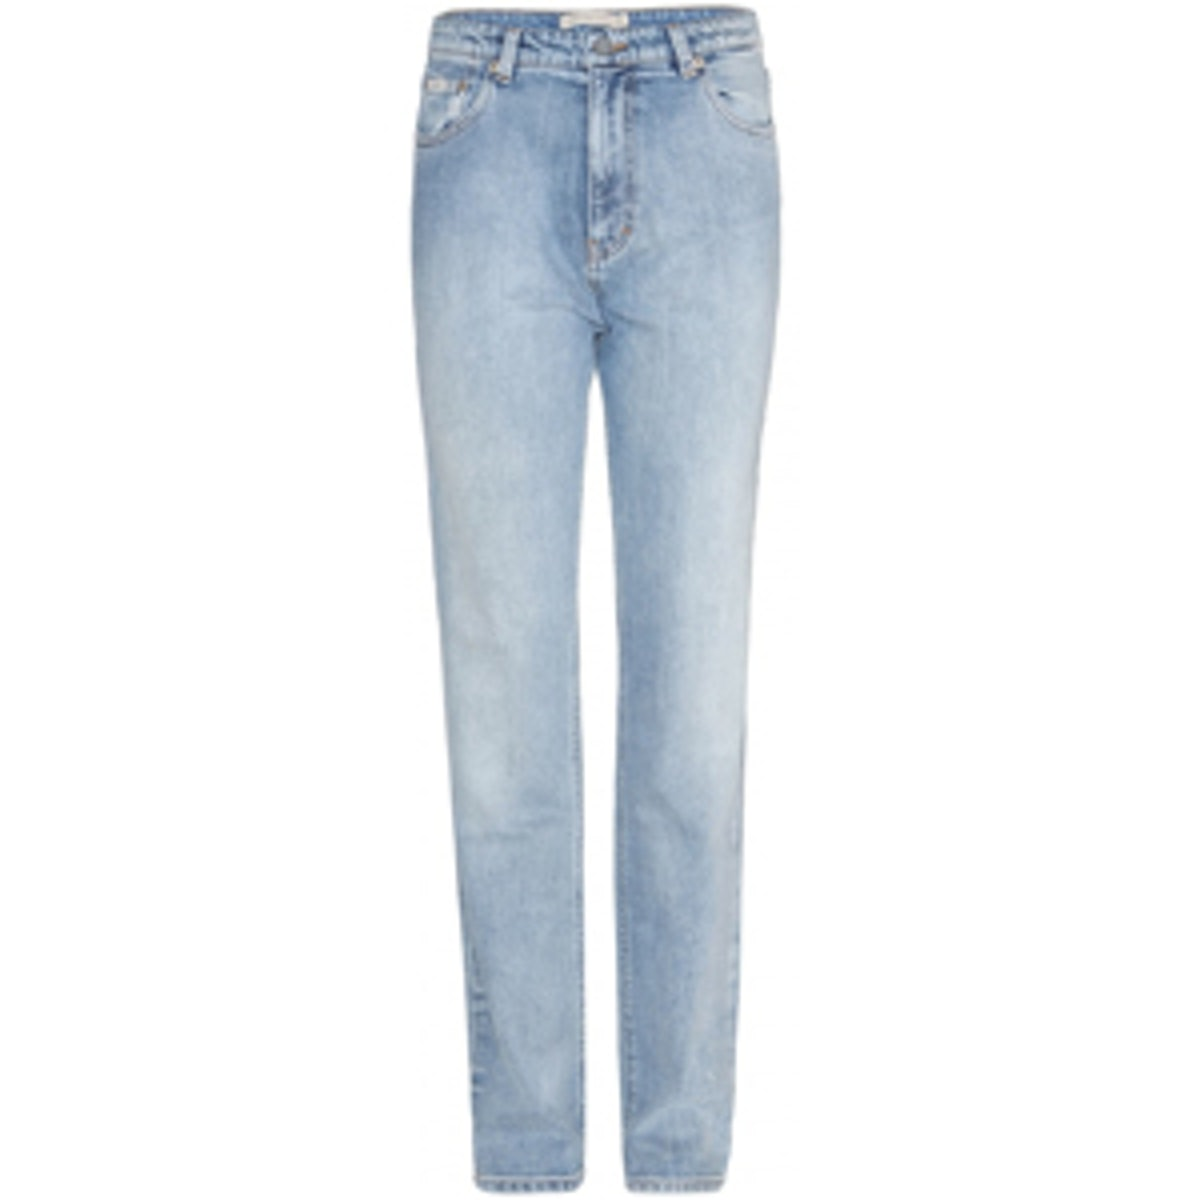 Low Rider Jeans